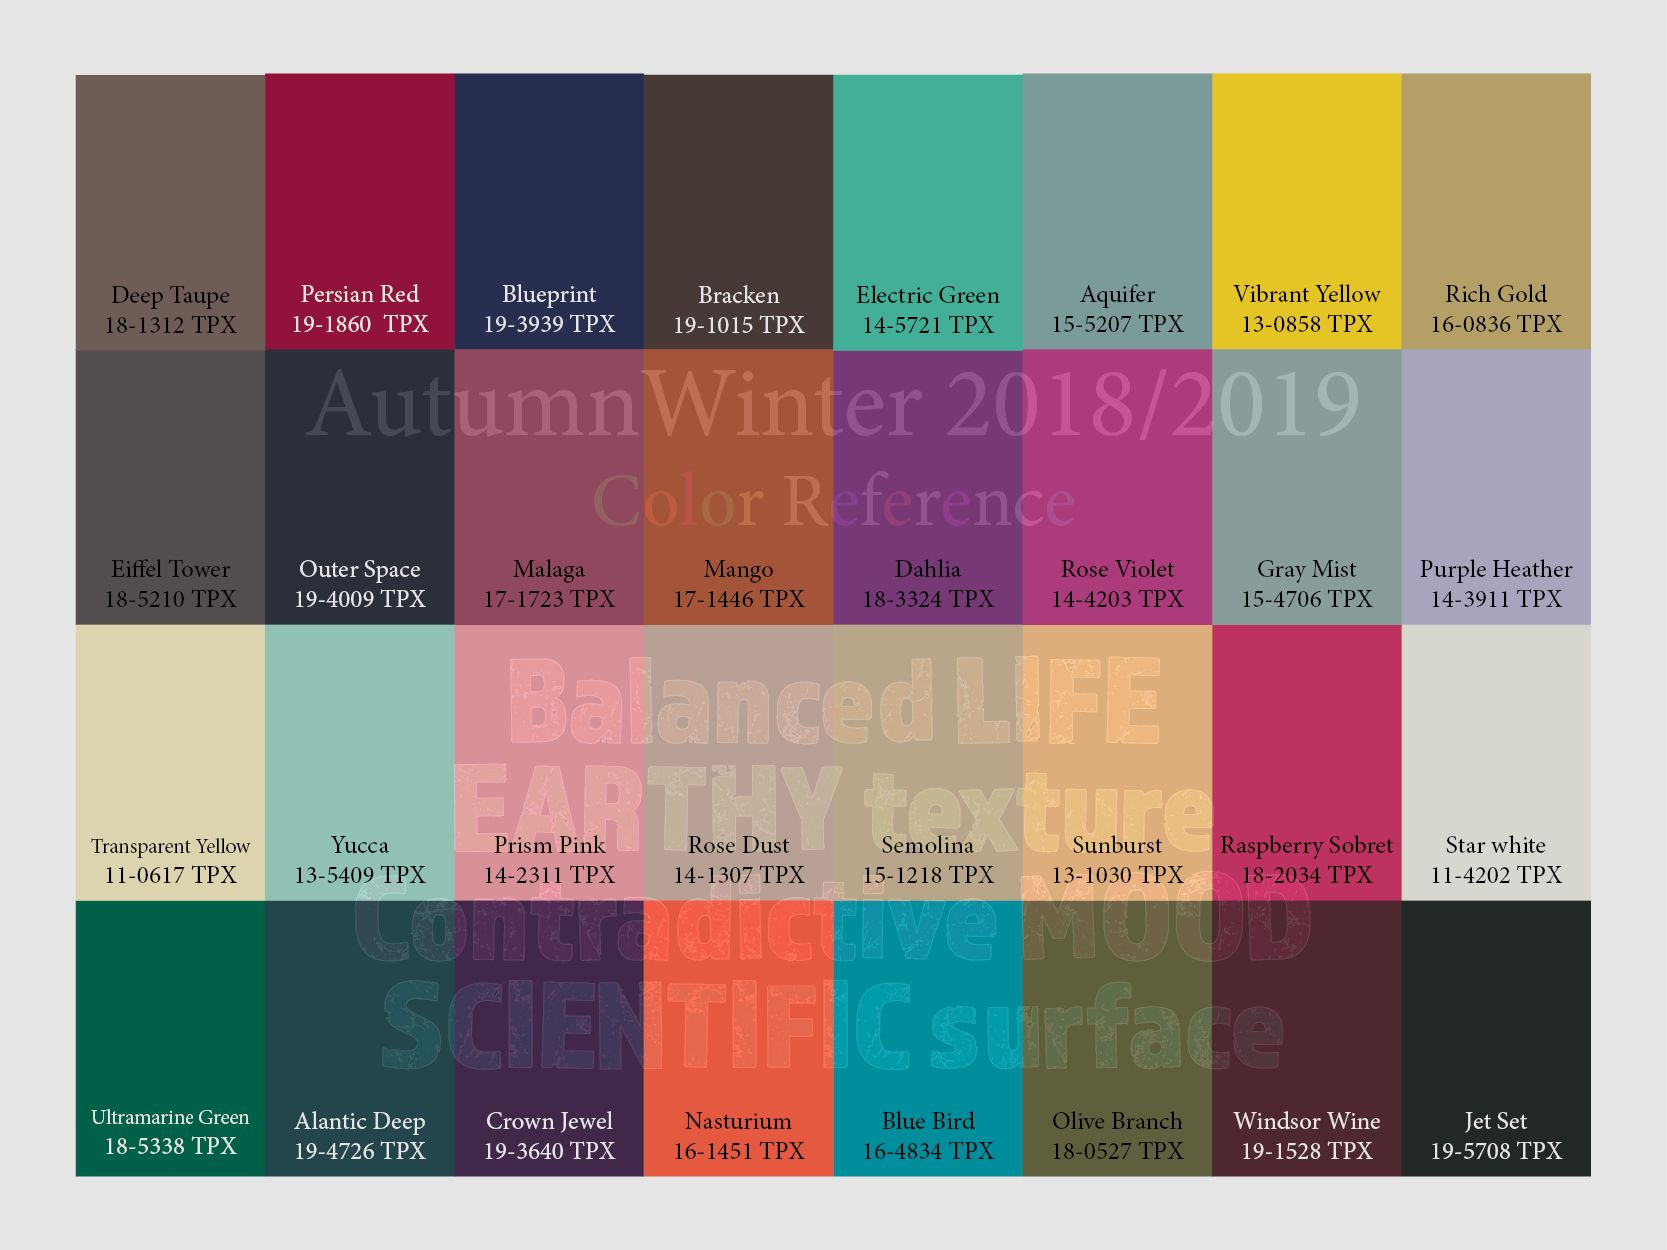 Fall-Winter 2019 Color Trends